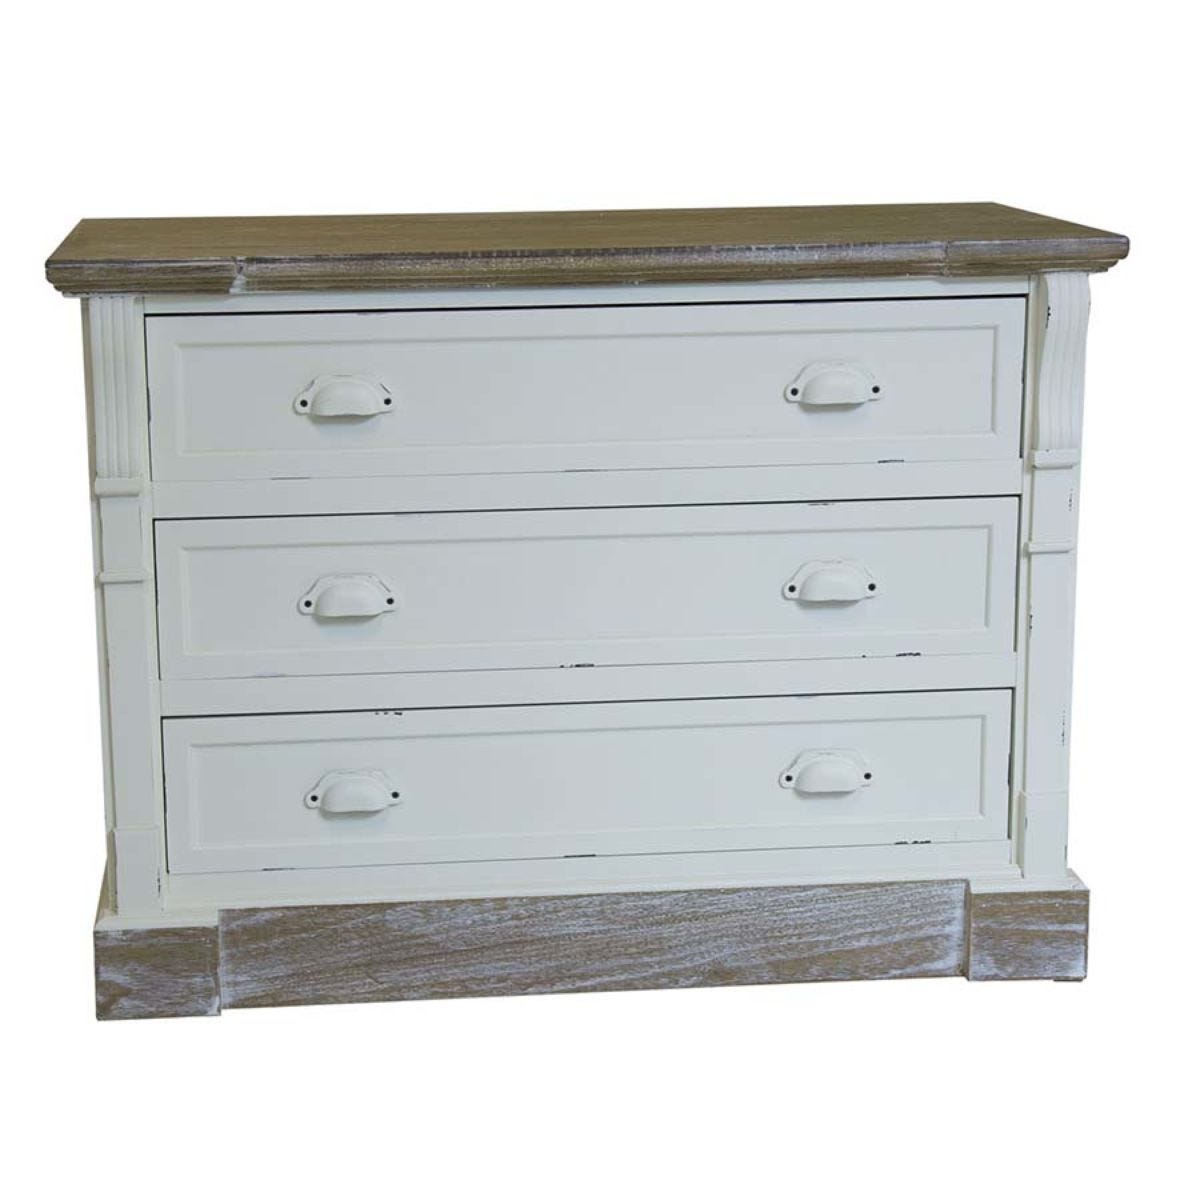 Shabby Chic Vintage French Style Chest of 3 Drawers - White